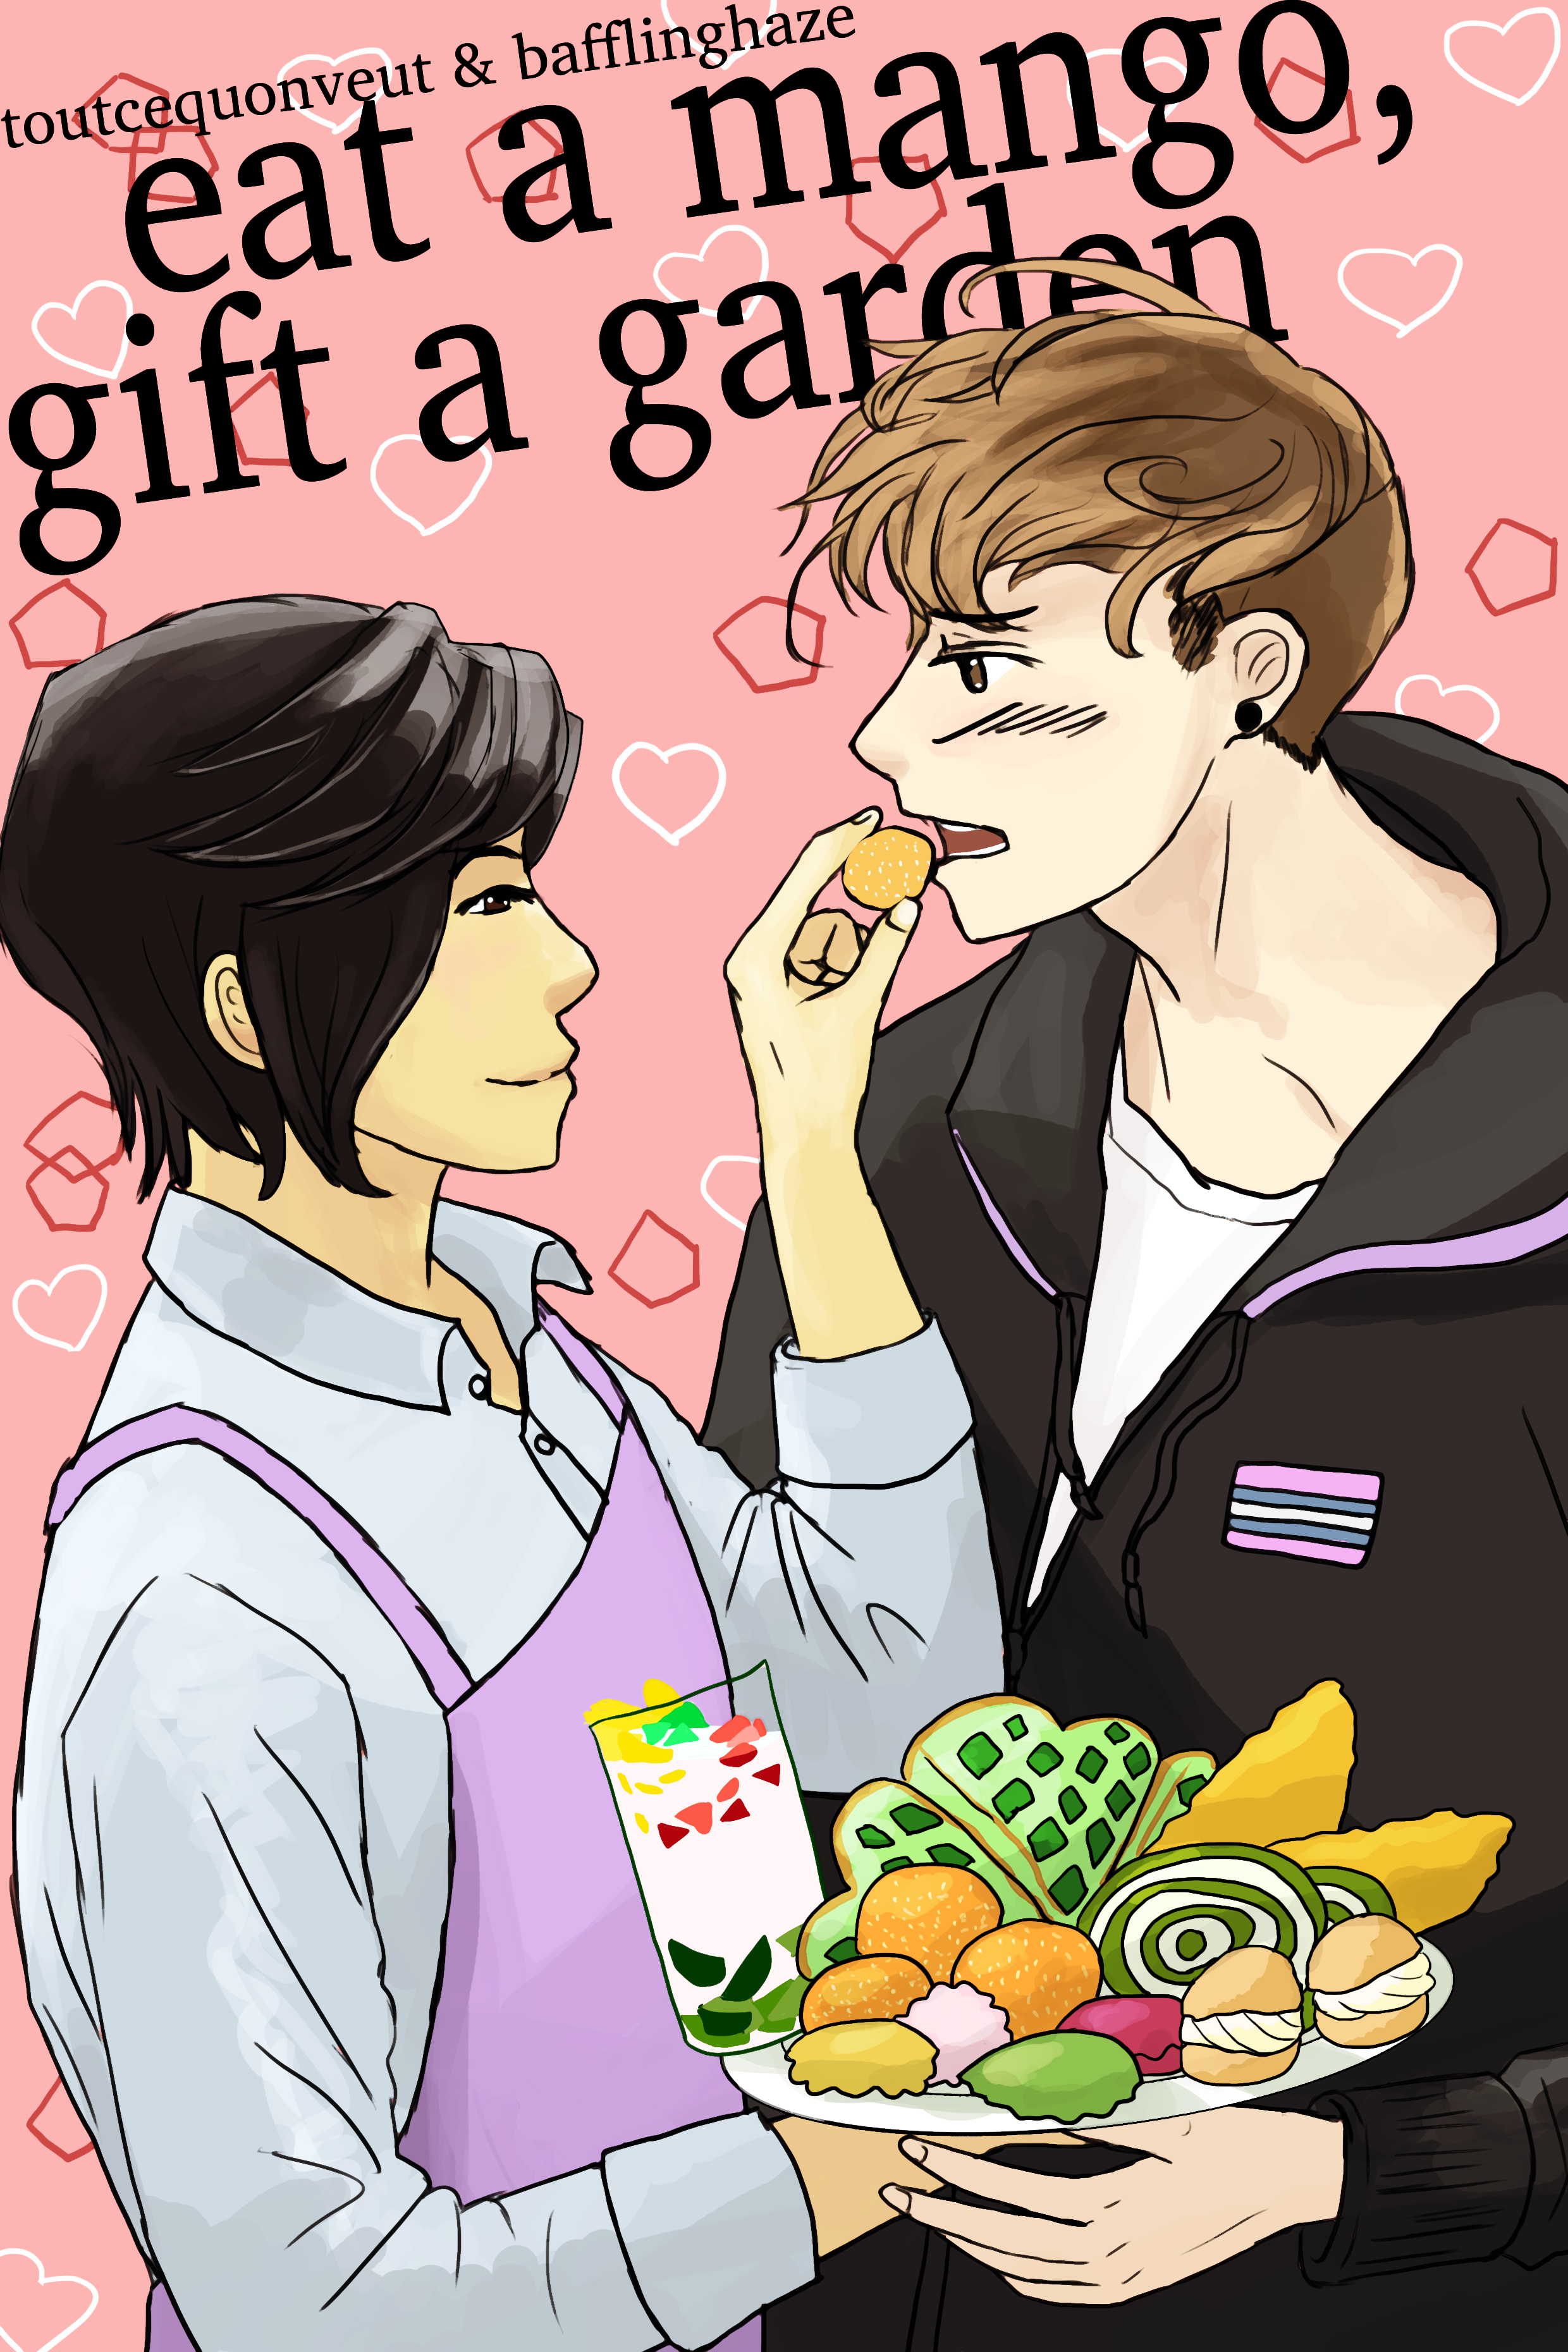 Book cover: Khánh stands on the left feeding a Vietnamese dessert to Kai on the right. Khánh is wearing a light blue long-sleeved shirt with a light purple apron, and their hair is dark brown bobcut. They are holding a plate of desserts. Kai is wearing a puffy black coat and has light brown hair in an undercut. The background is pink with hearts and pentagons.